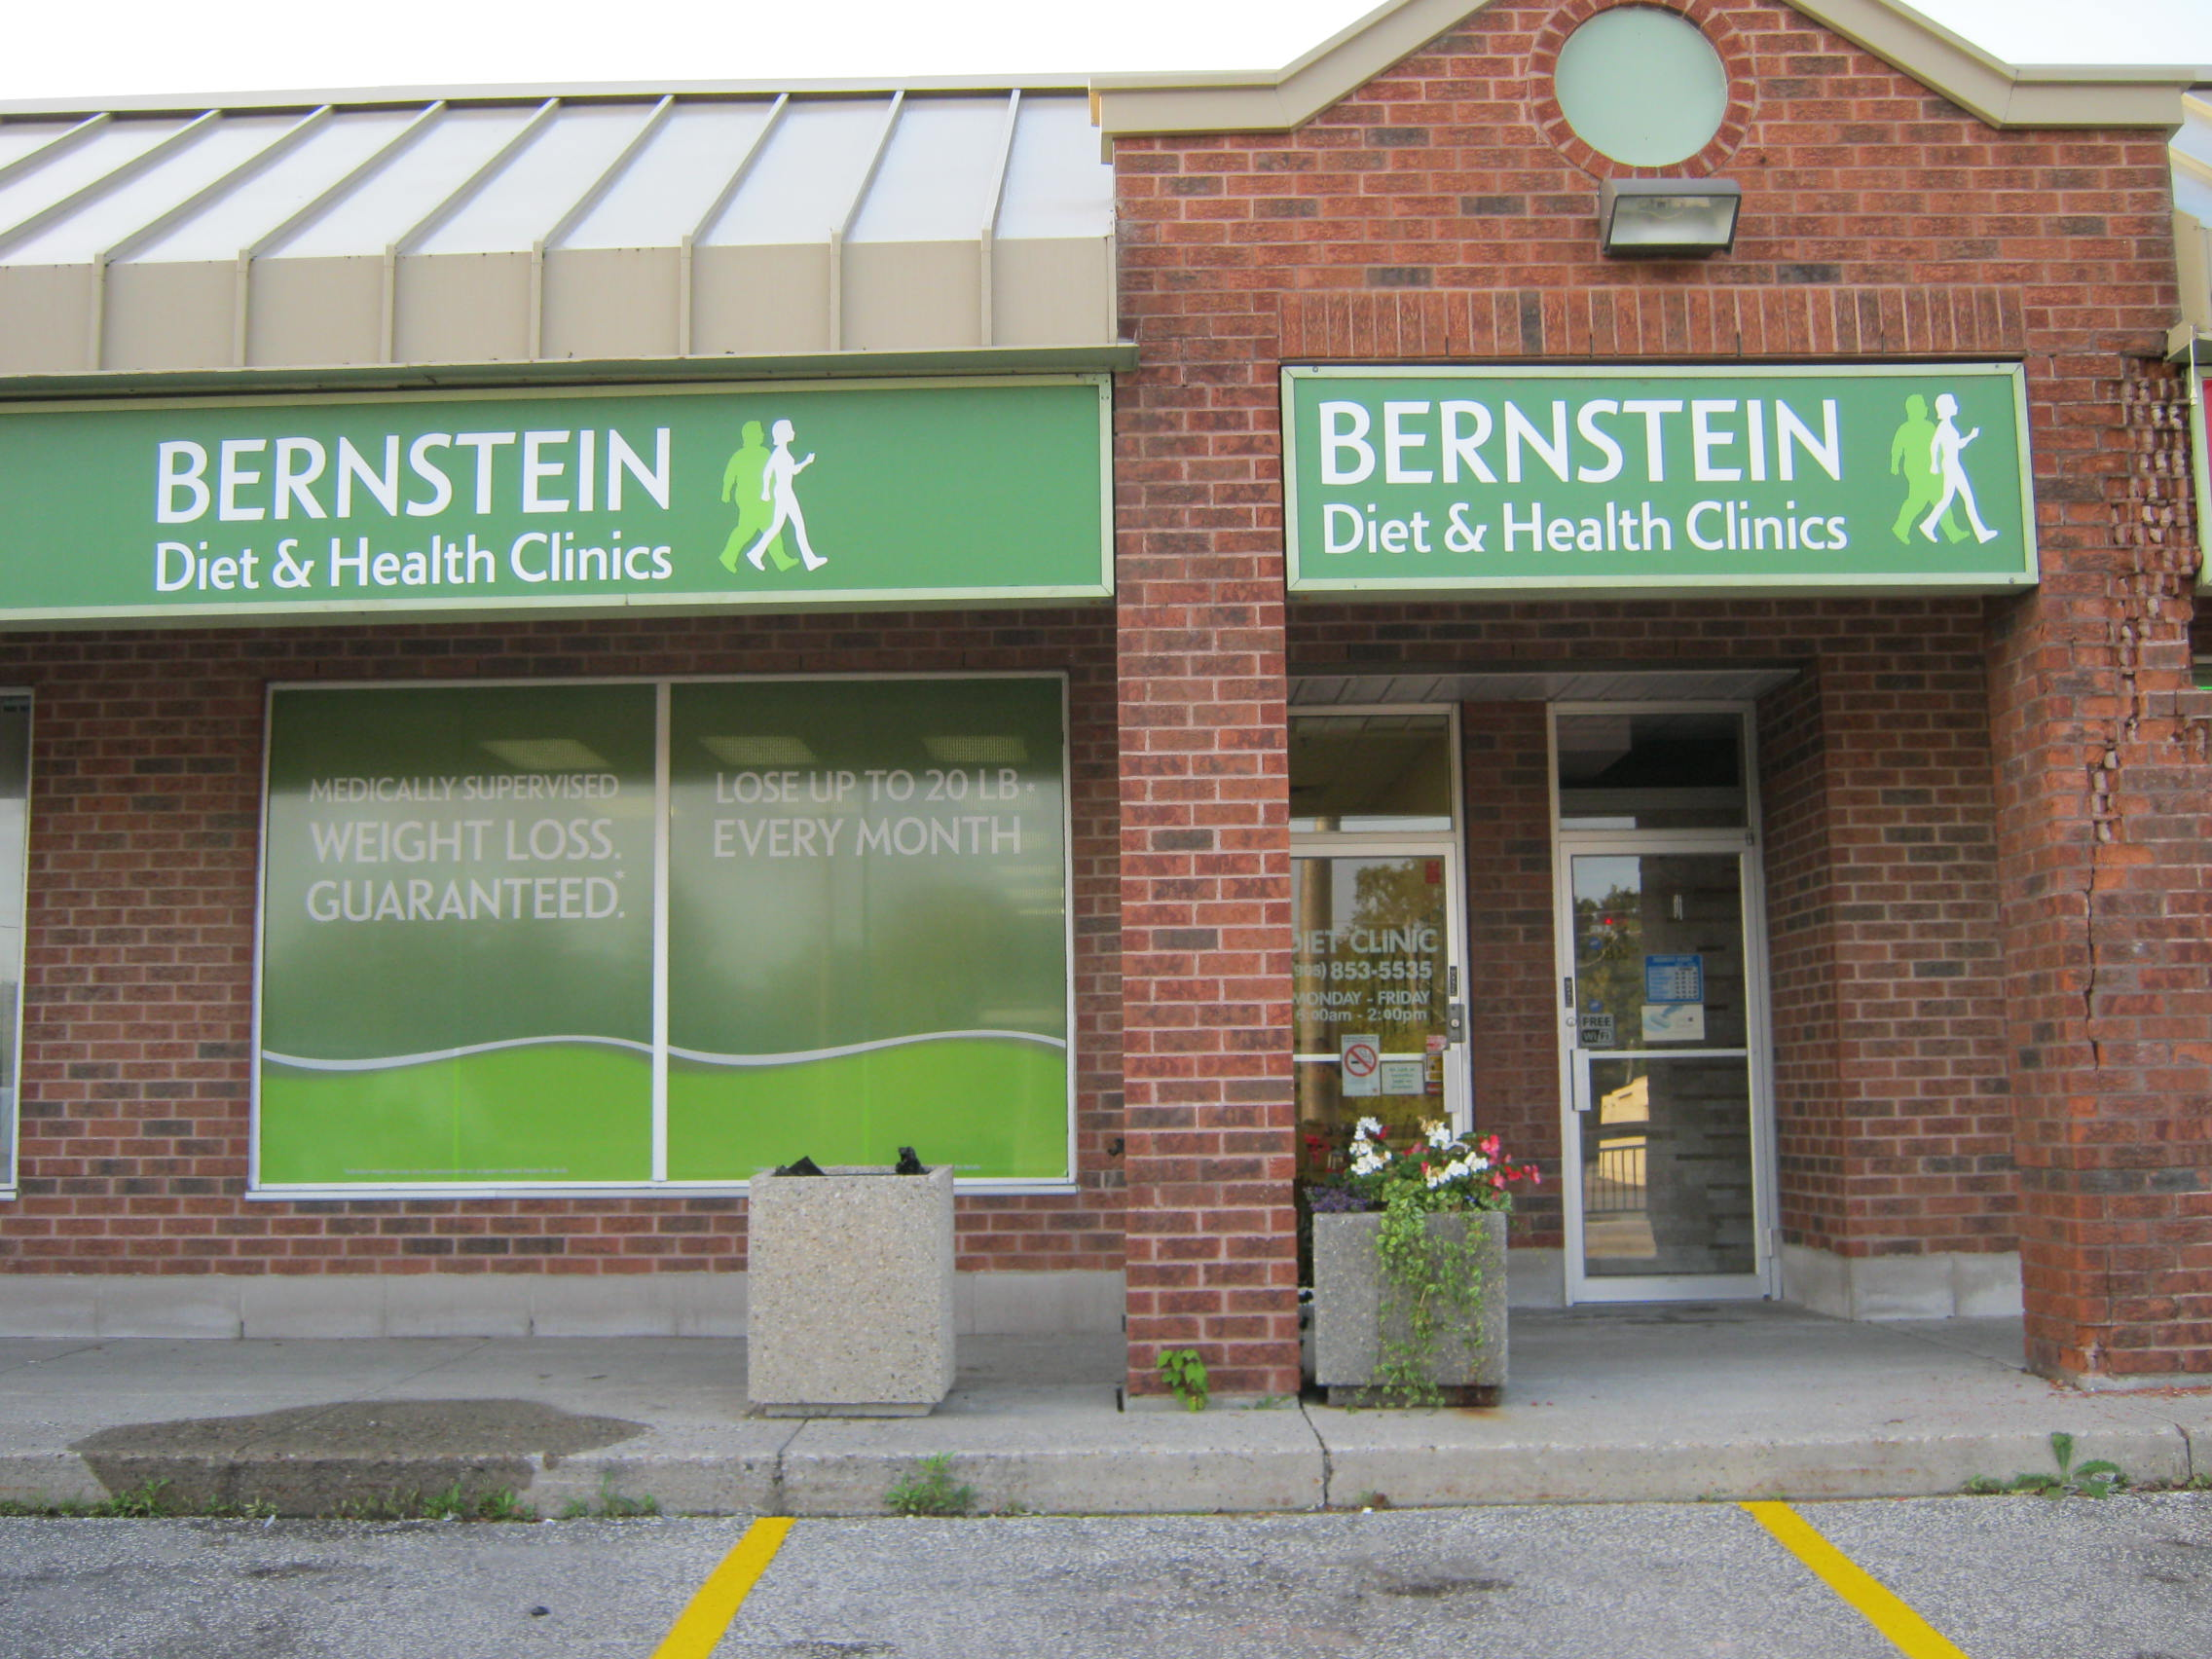 Dr. Bernstein Weight Loss & Diet Clinic, Newmarket, Ontario